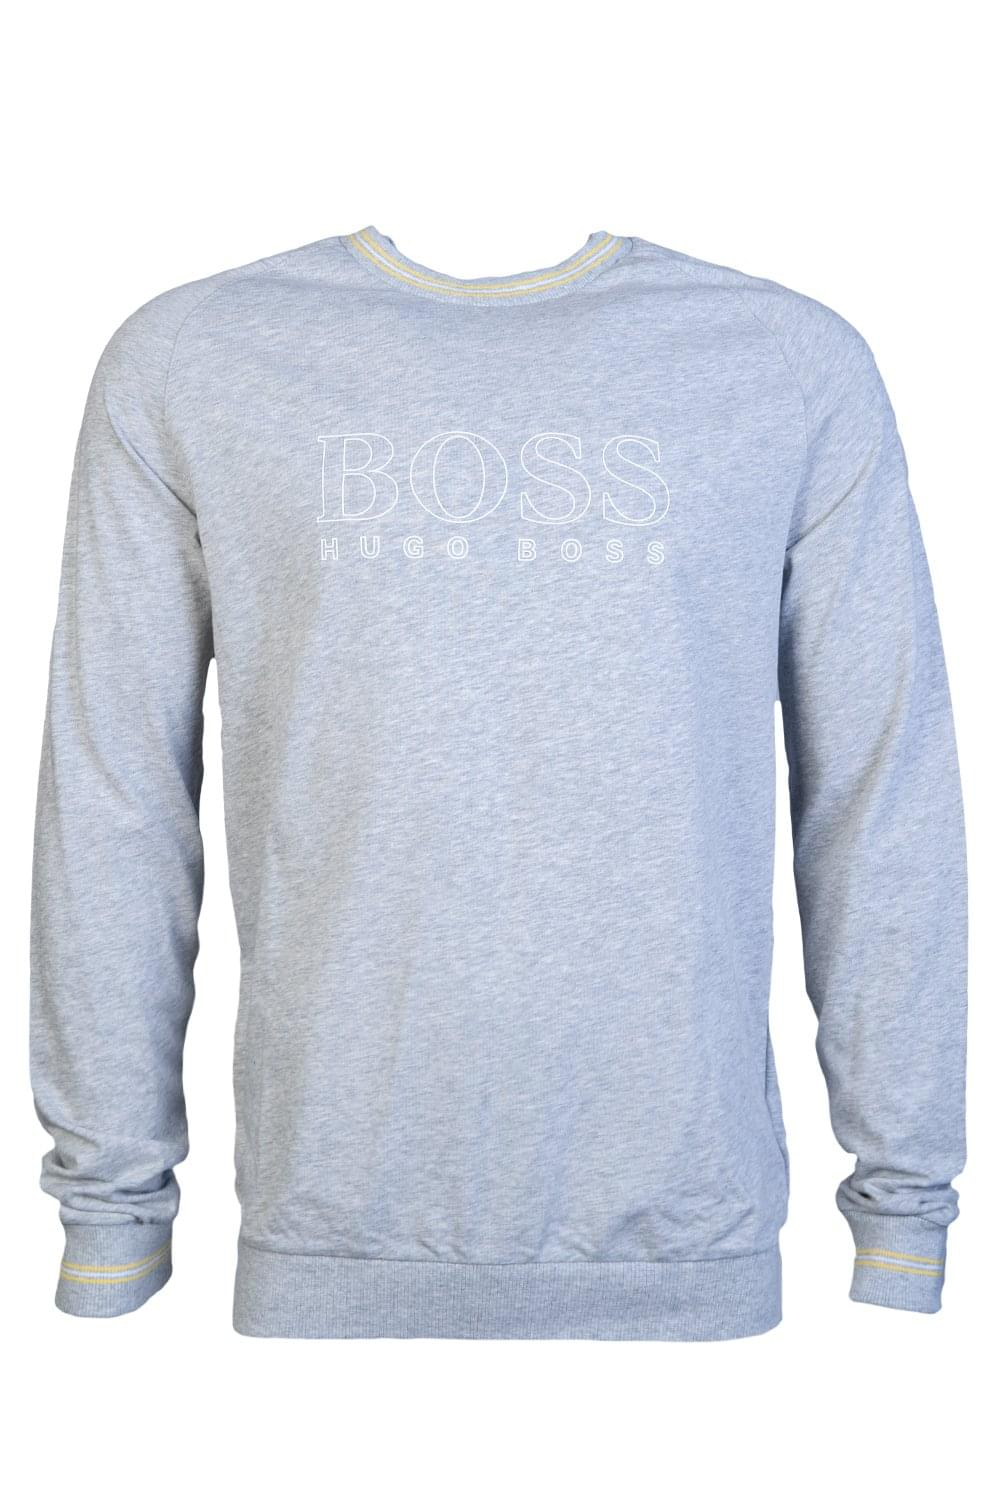 5fed44fdc BOSS Sweatshirt Jumper model